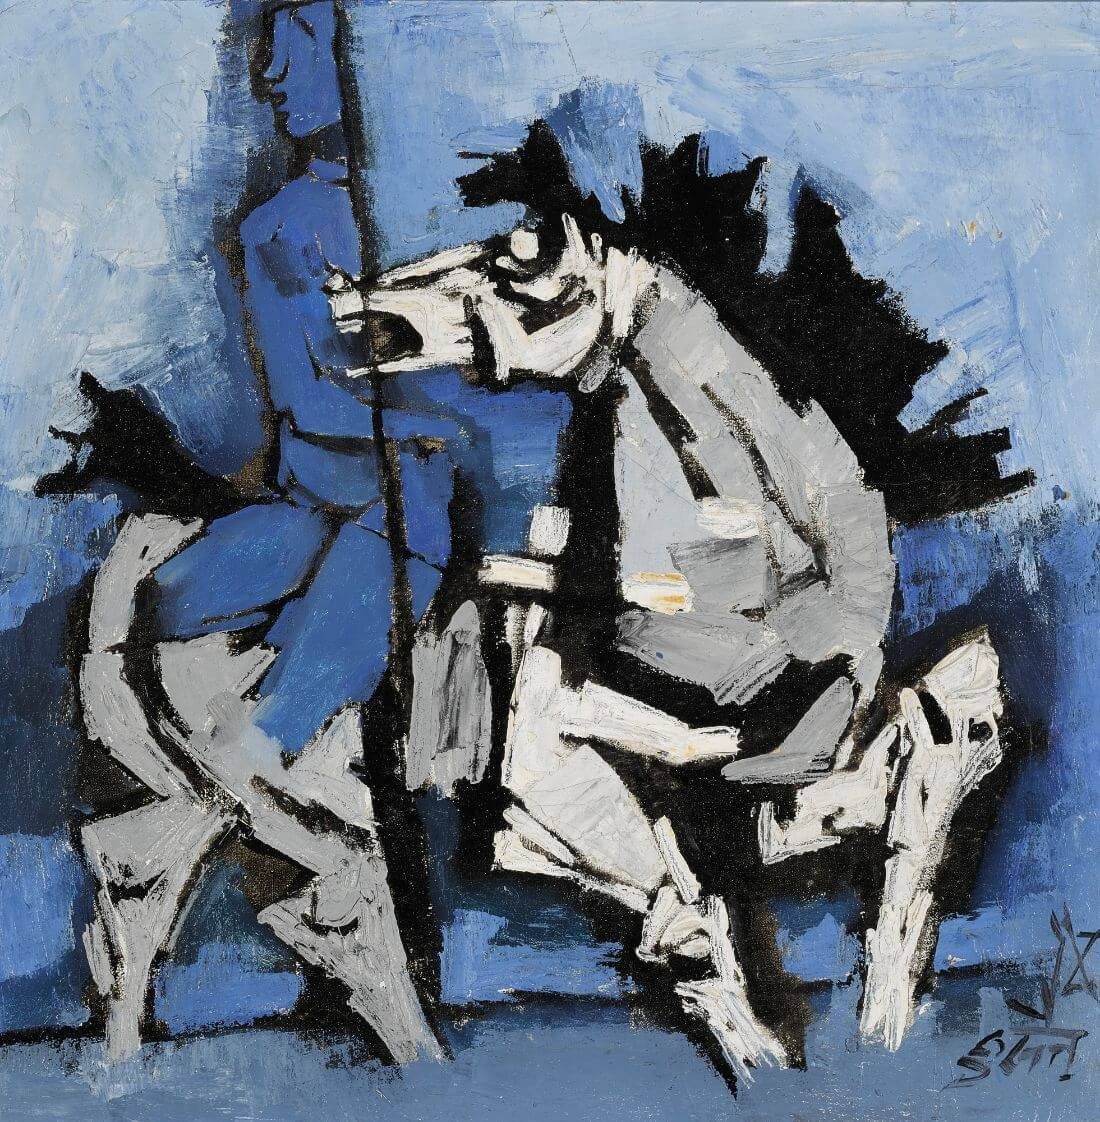 Woman On A Horse Art Prints By M F Husain Buy Posters Frames Canvas Digital Art Prints Small Compact Medium And Large Variants